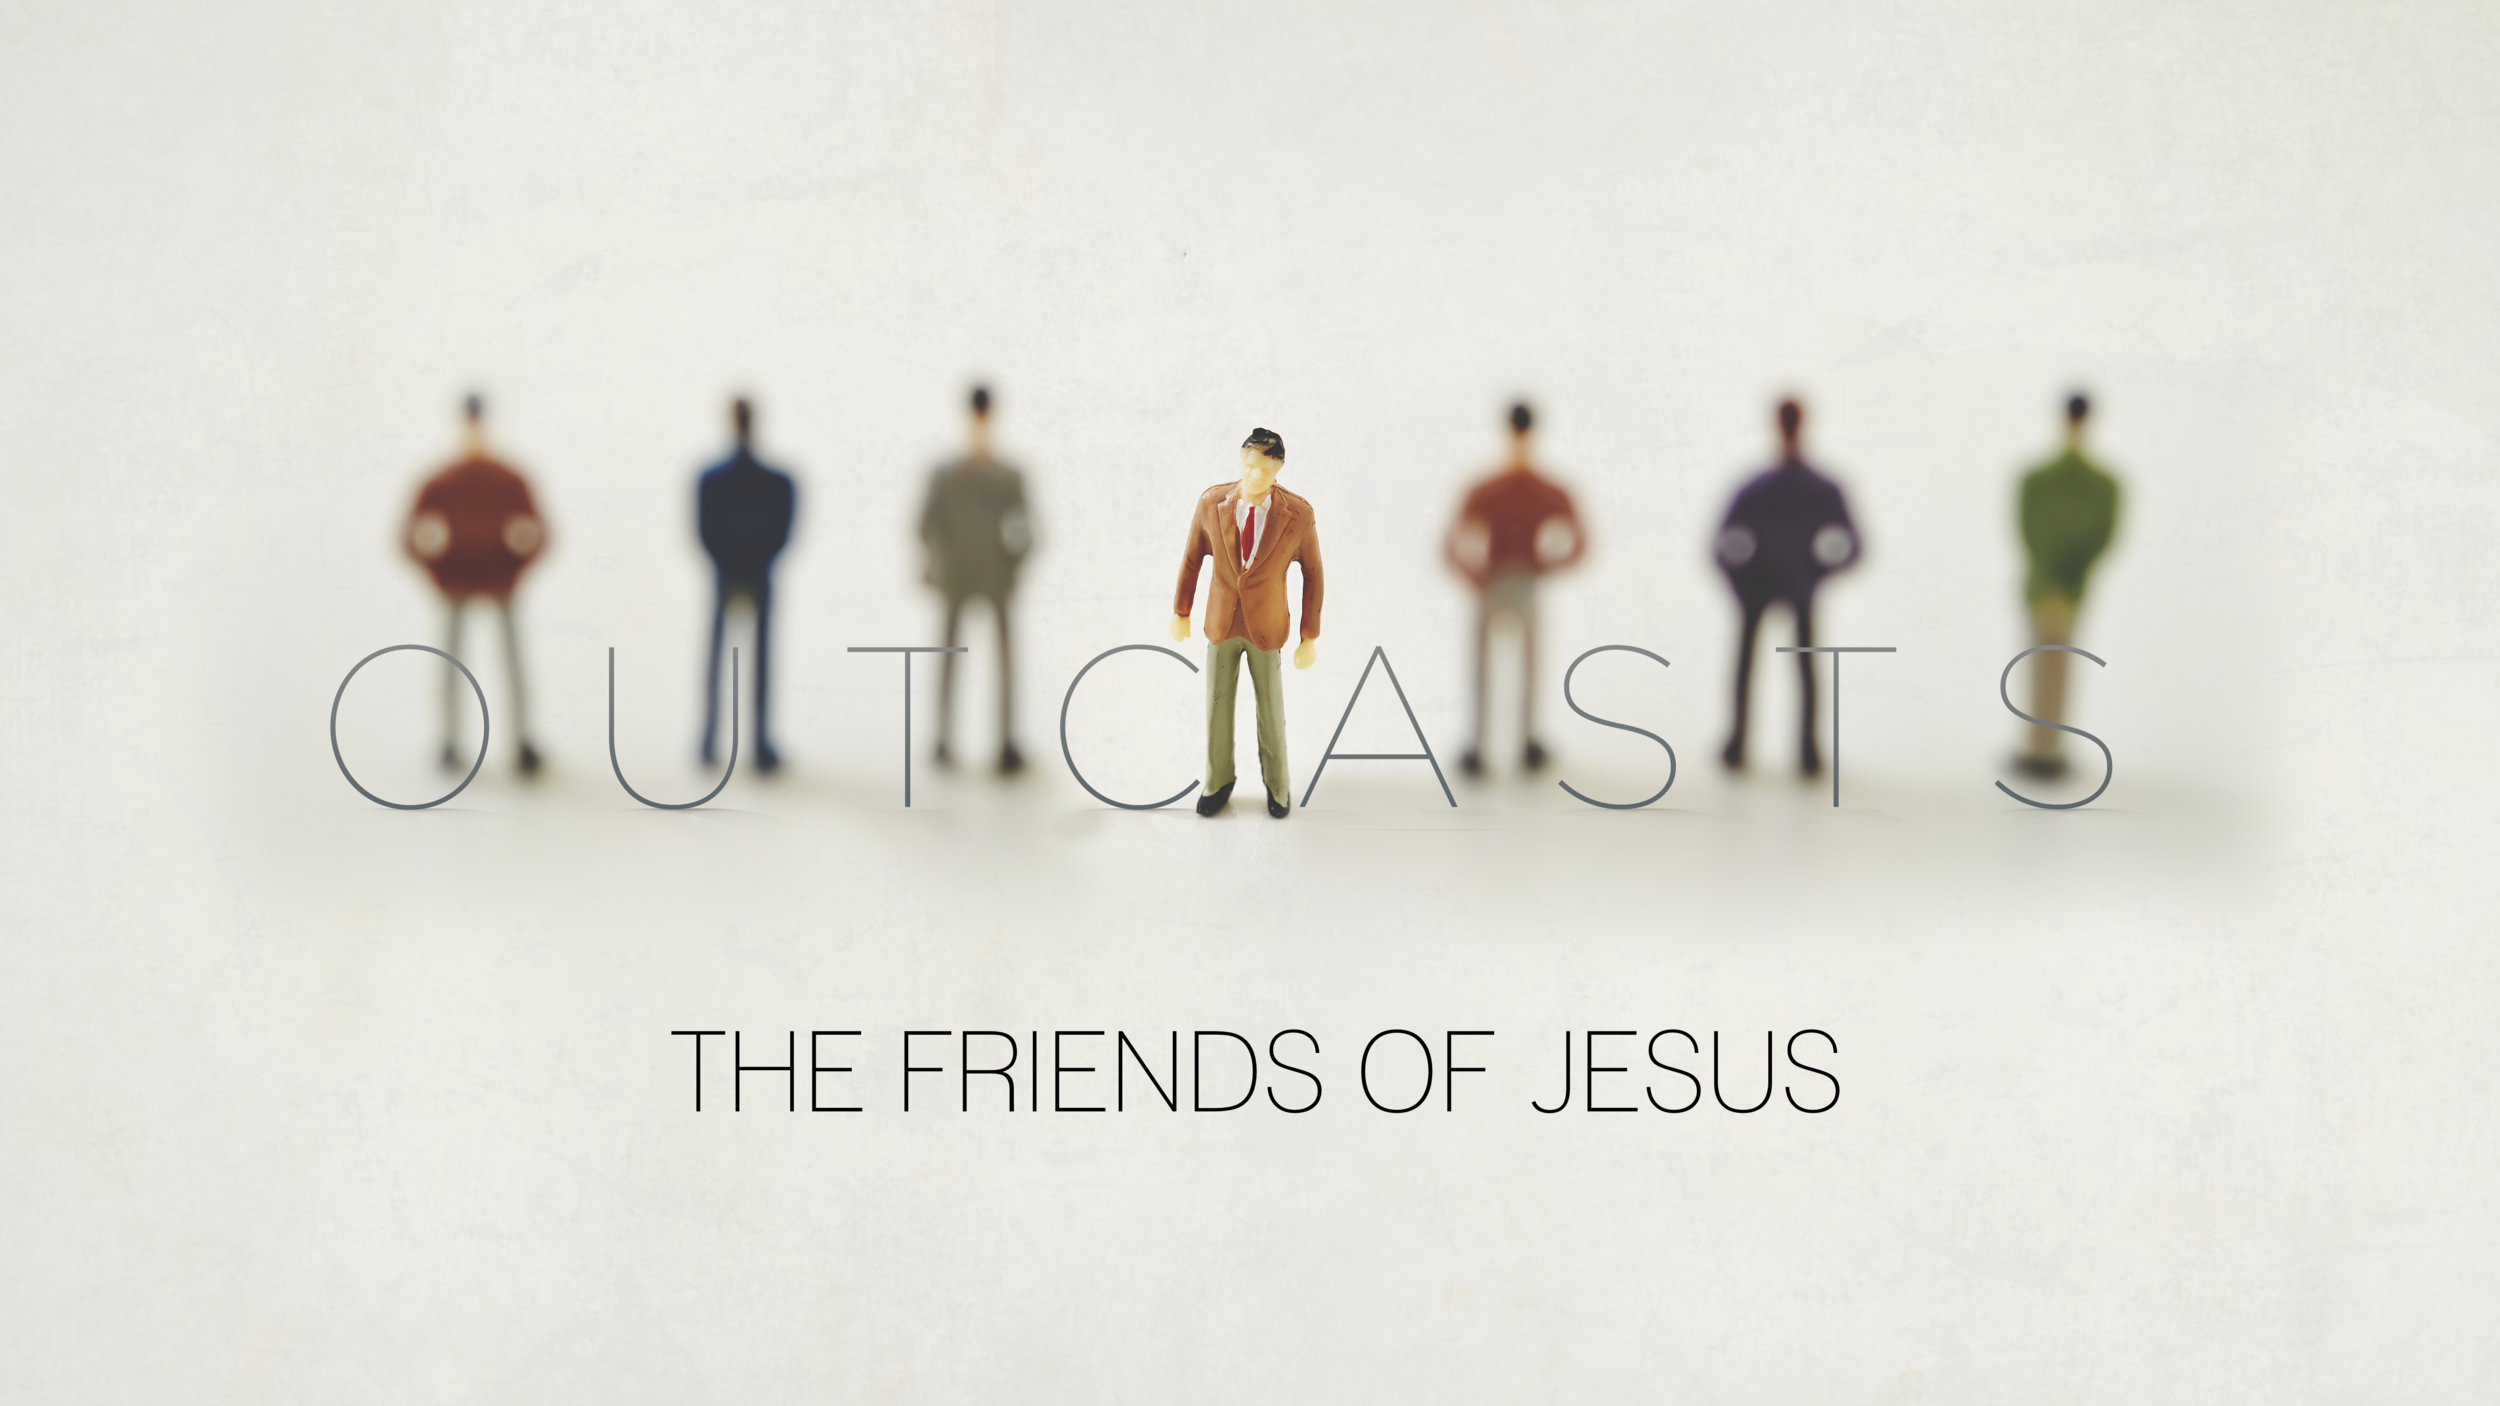 Outcasts_title slide(1).png